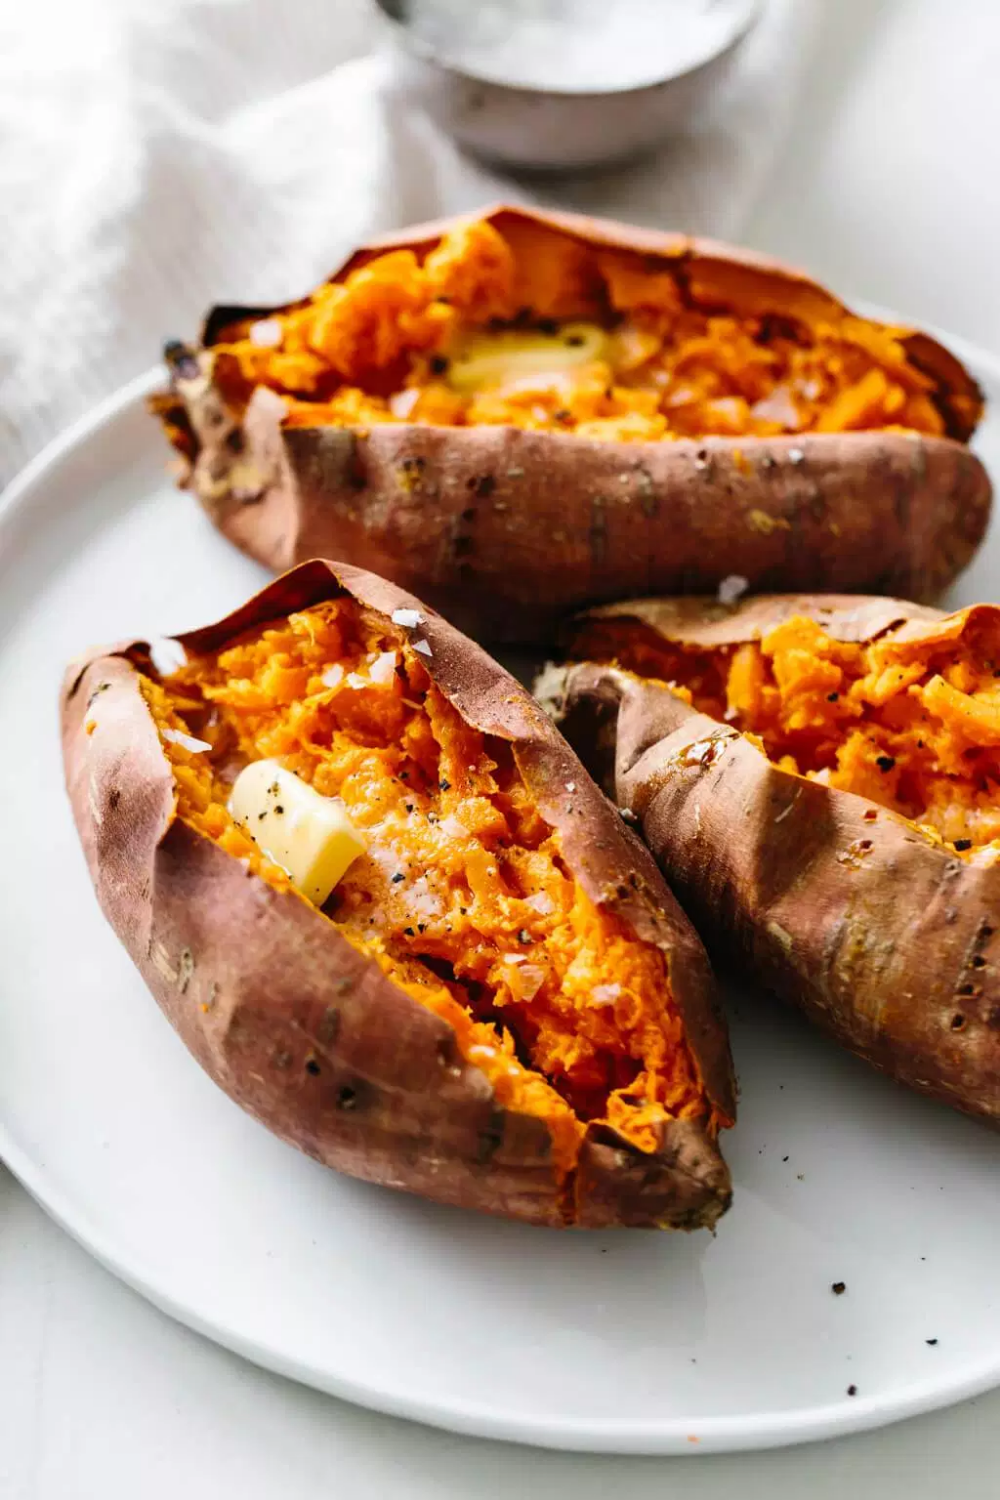 Baked Sweet Potato How To Bake Sweet Potatoes Perfectly Downshiftology Cooking Sweet Potatoes Sweet Potato Recipes Roasted Sweet Potato Recipes